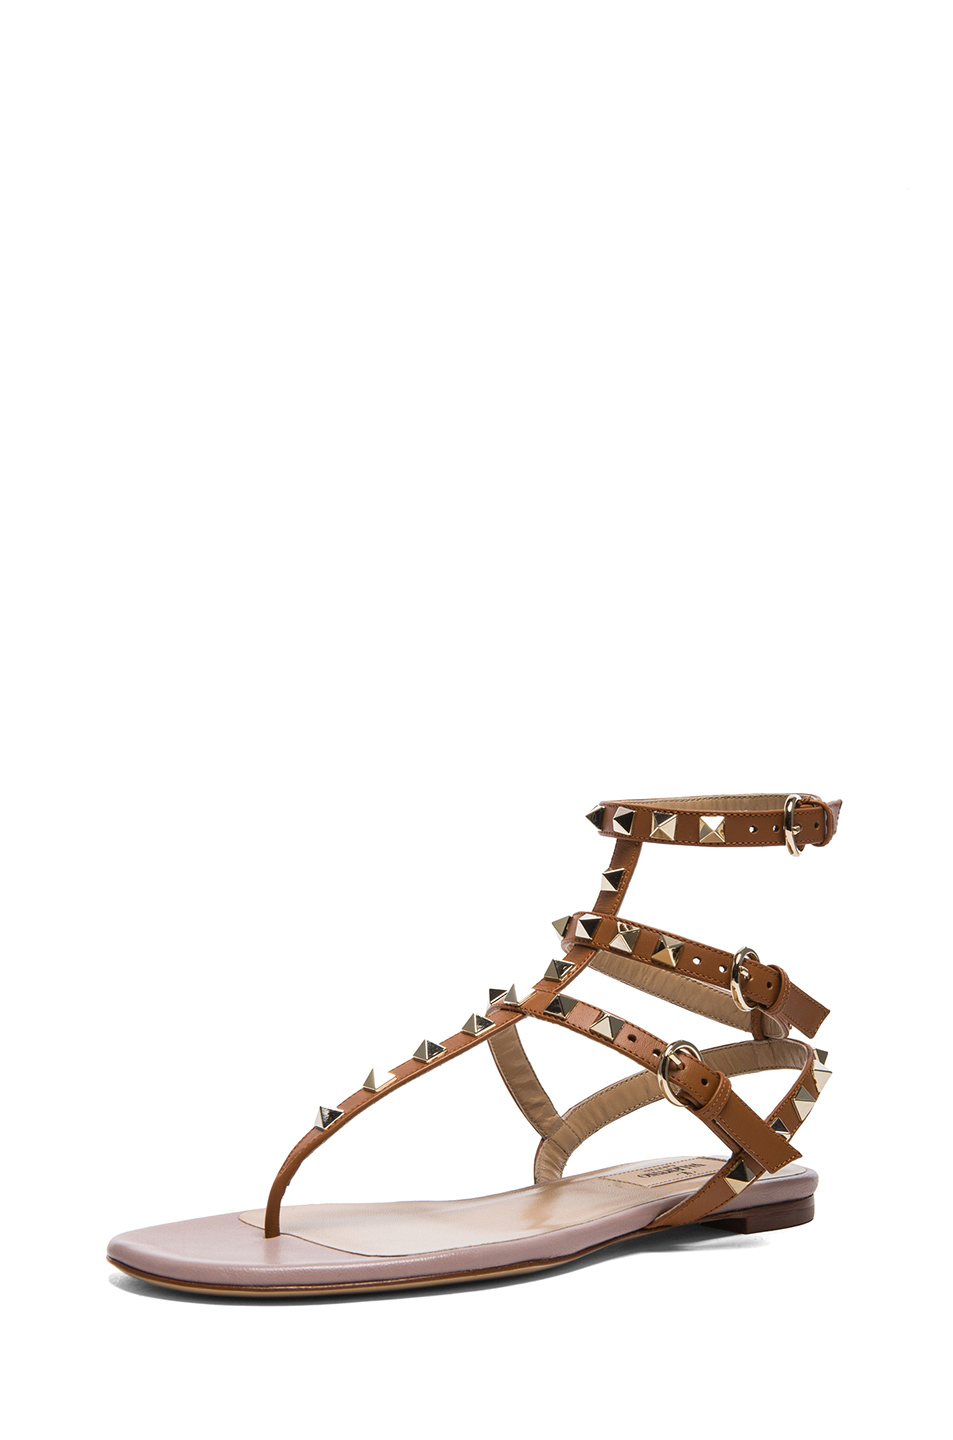 c7f5f2dab6a Lyst - Valentino Rockstud Leather Cage Sandals in Brown